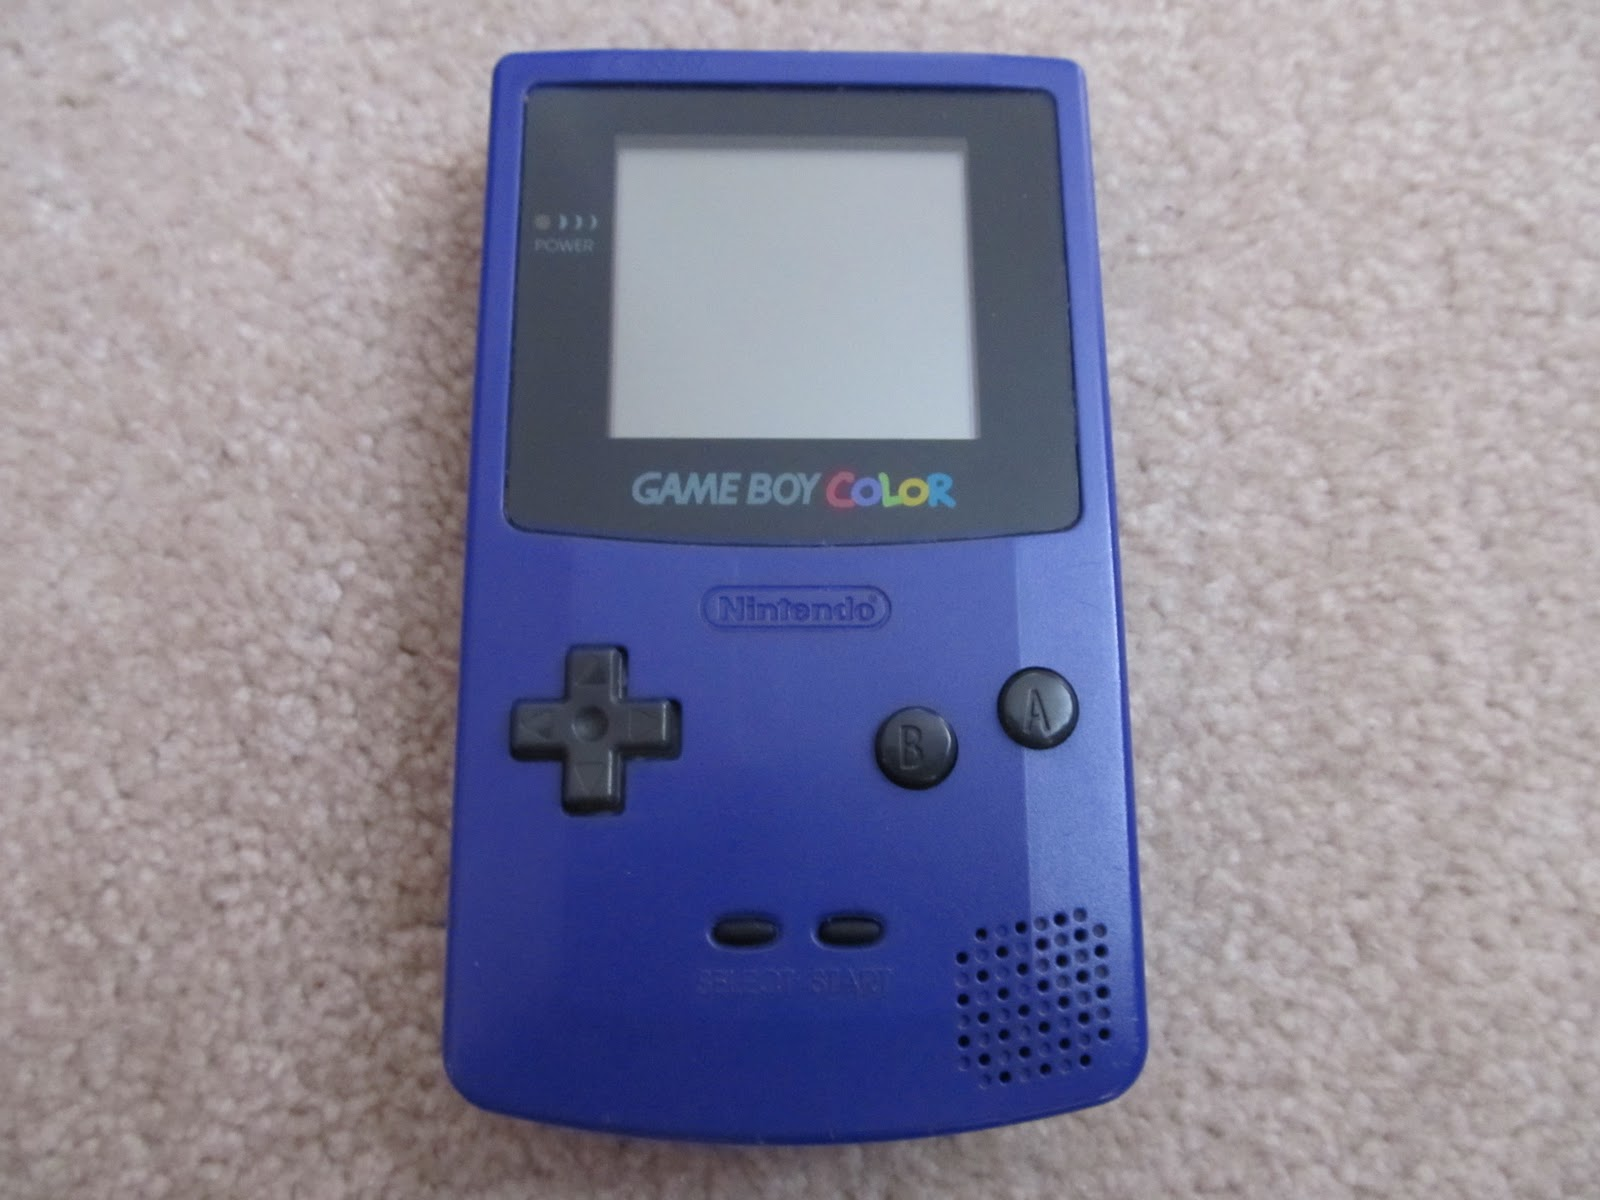 Cc10gaming All Generation Gaming Game Boy Collection Gameboy Color